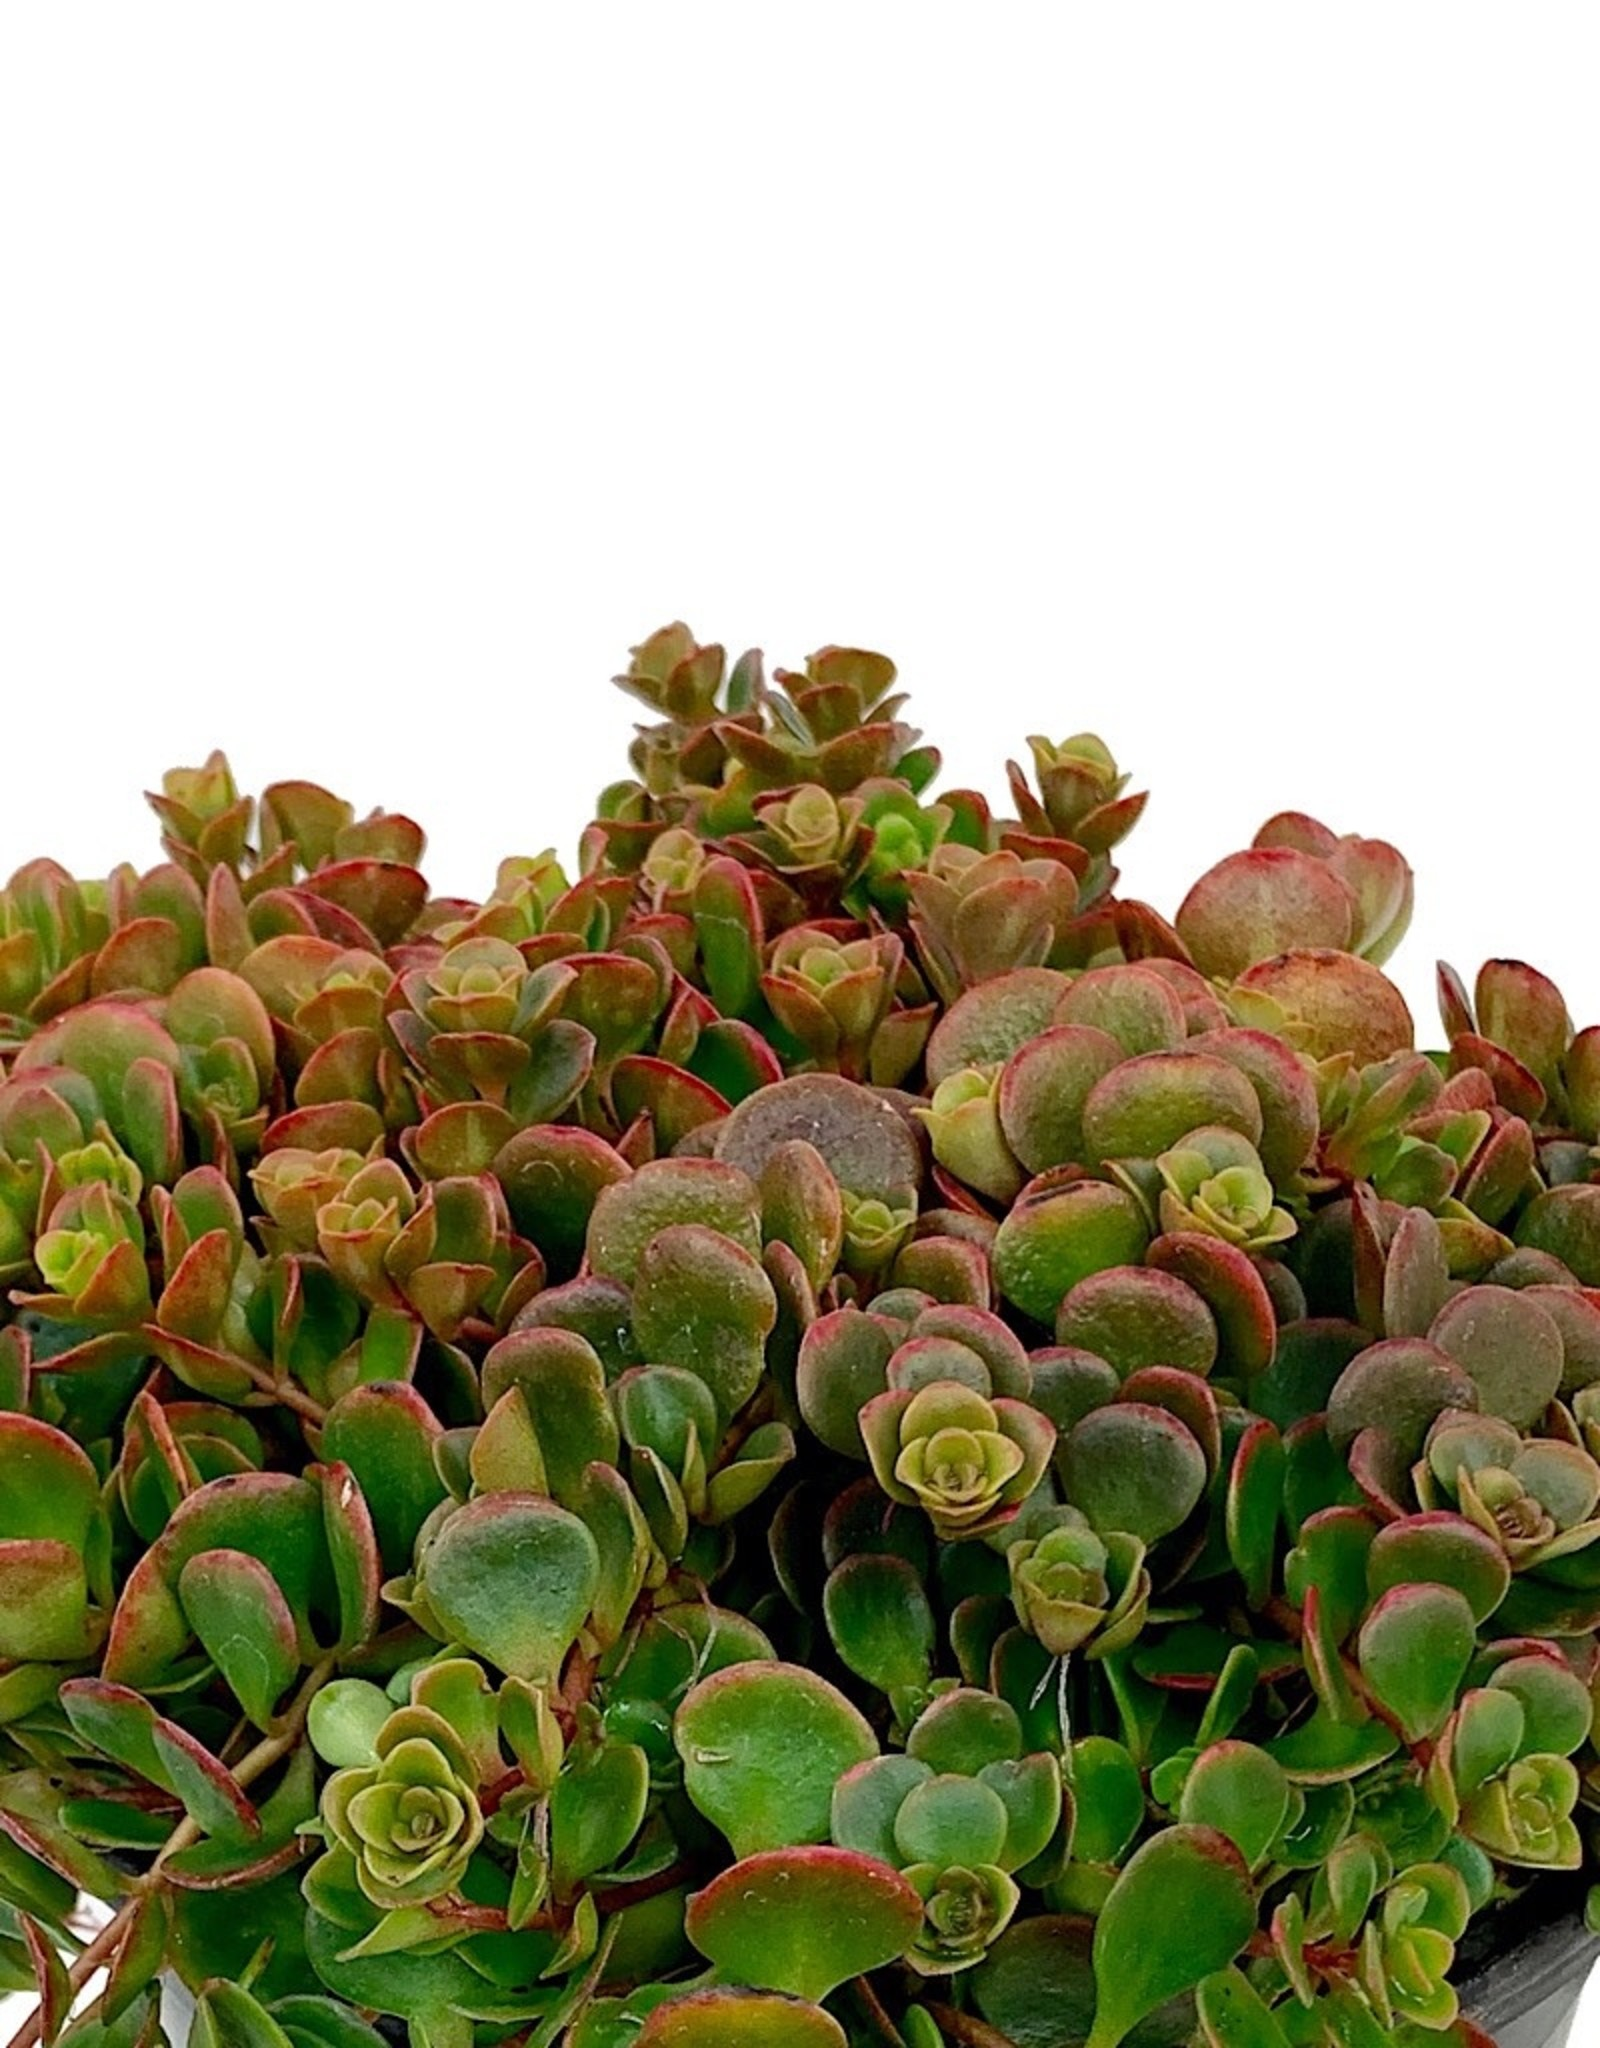 Sedum tetractinum 'Coral Reef' - 1 gal